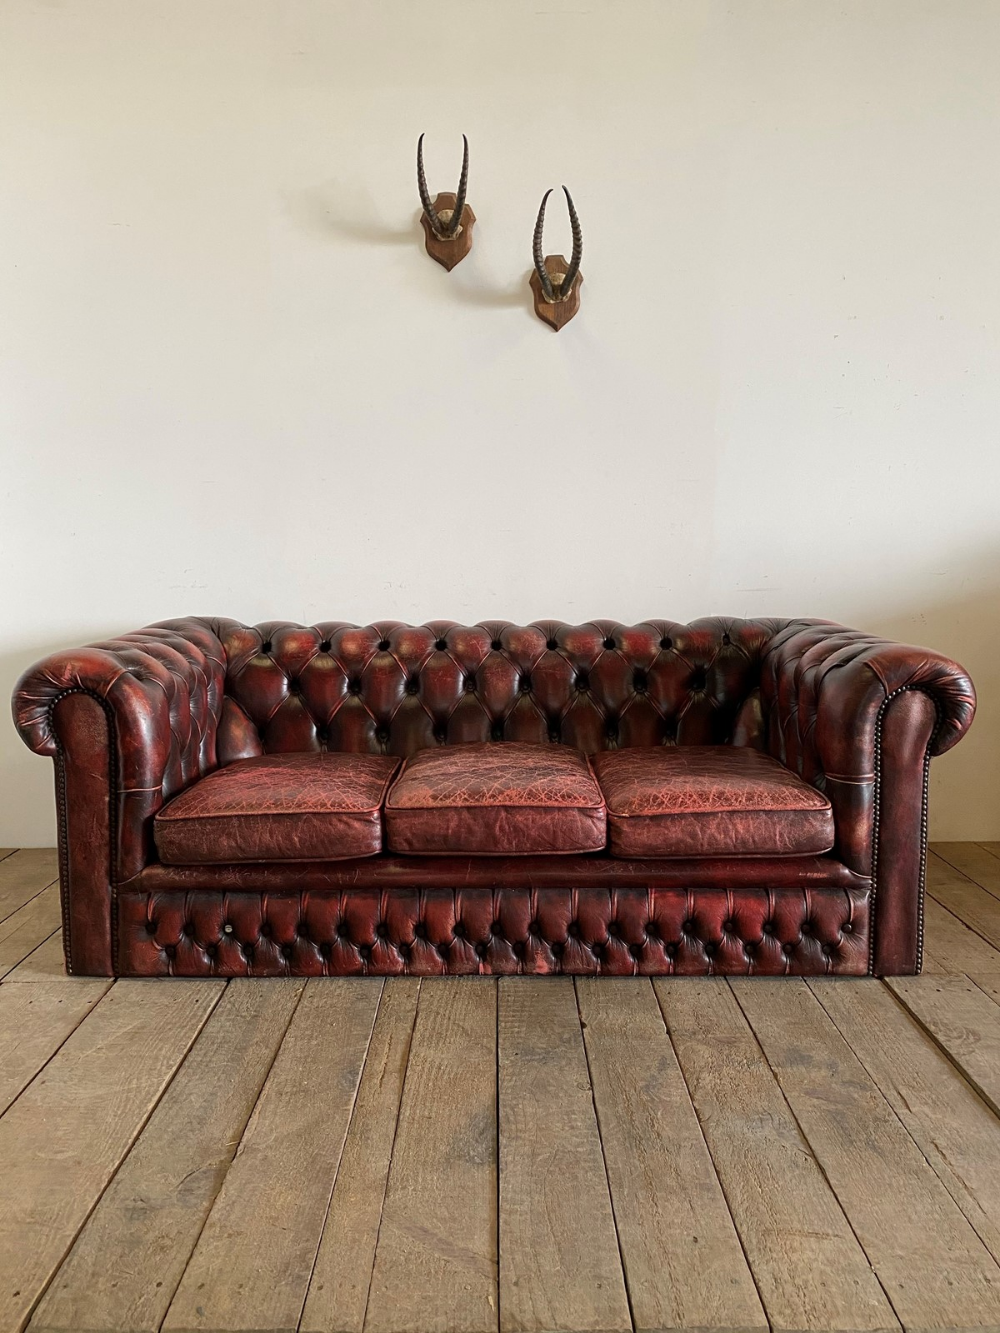 Vintage Leather Chesterfield Sofa The